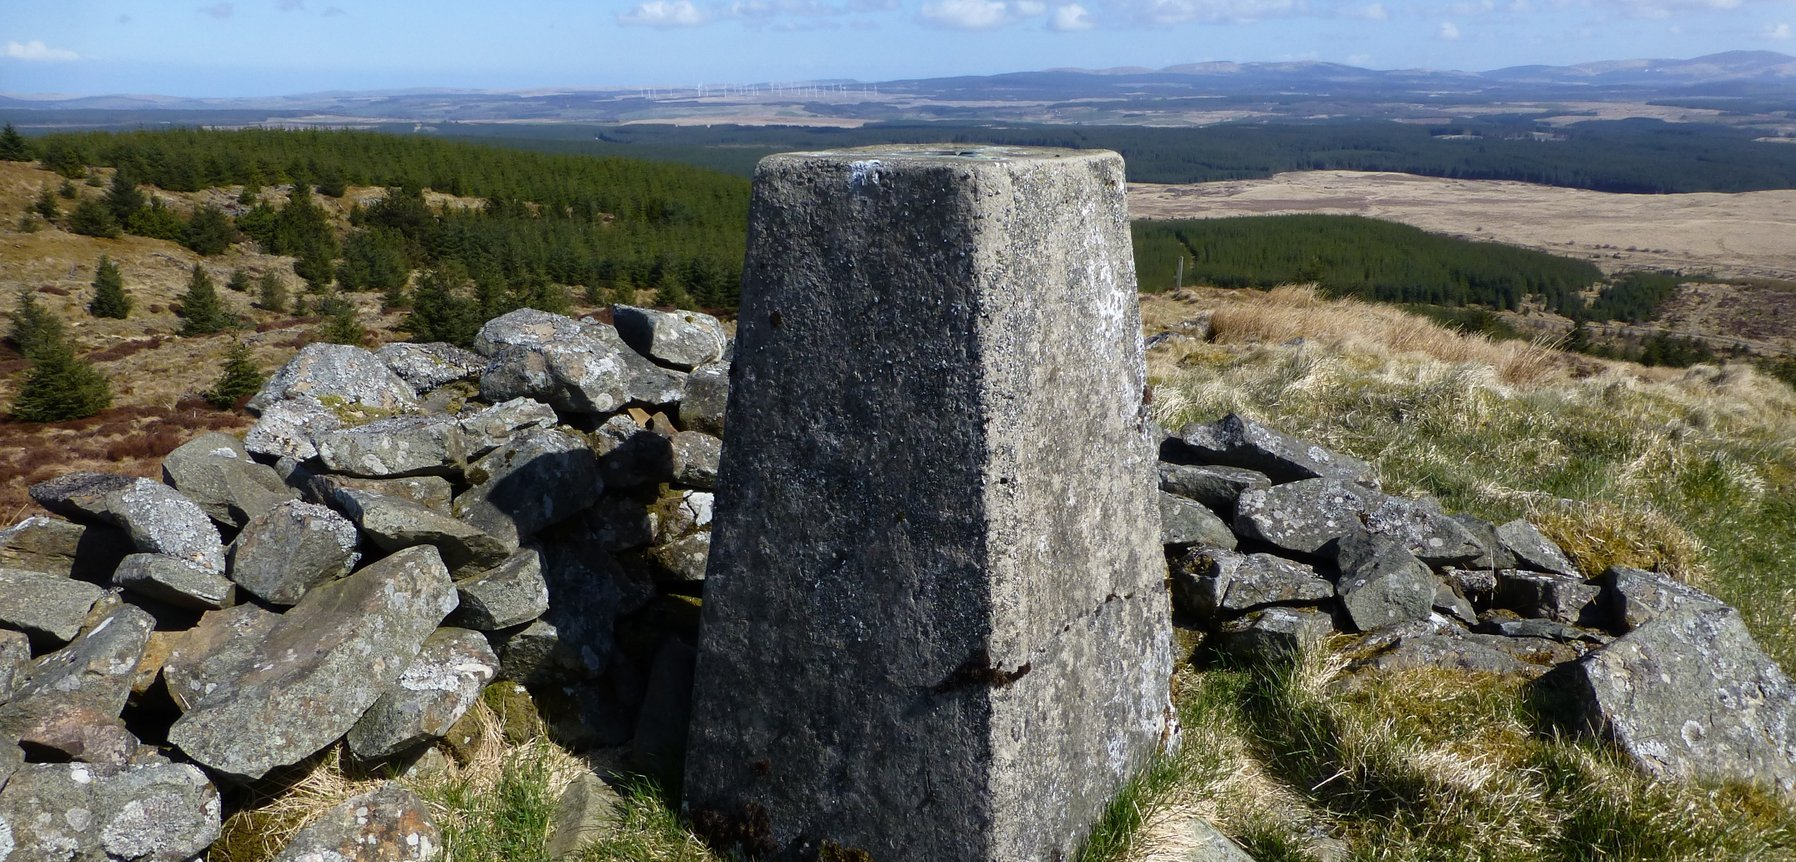 The summit and trig point of Craig Airie Fell